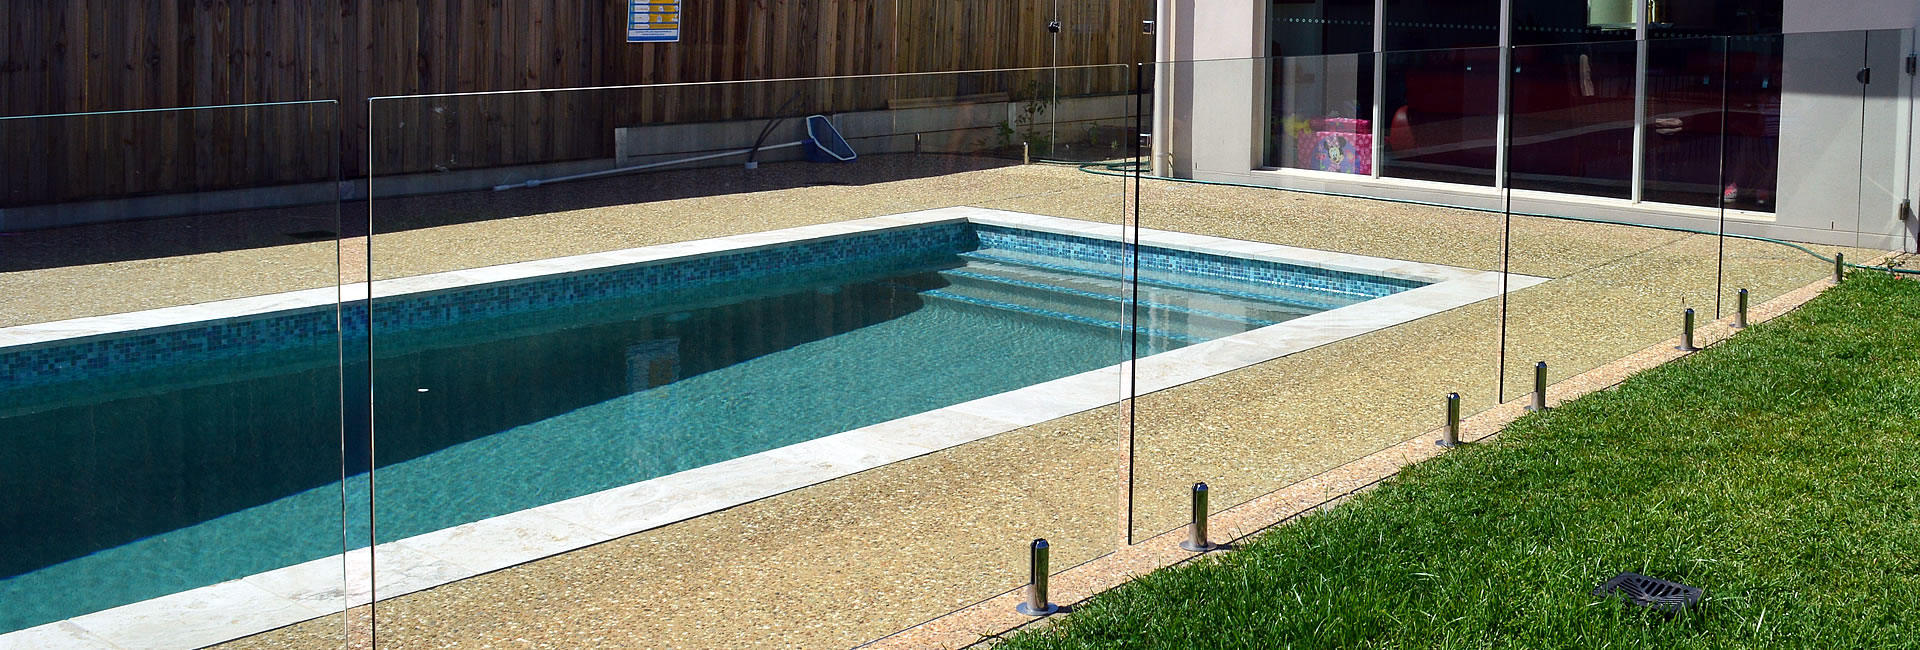 raphs-glass-pool-fencing-brisbane-02